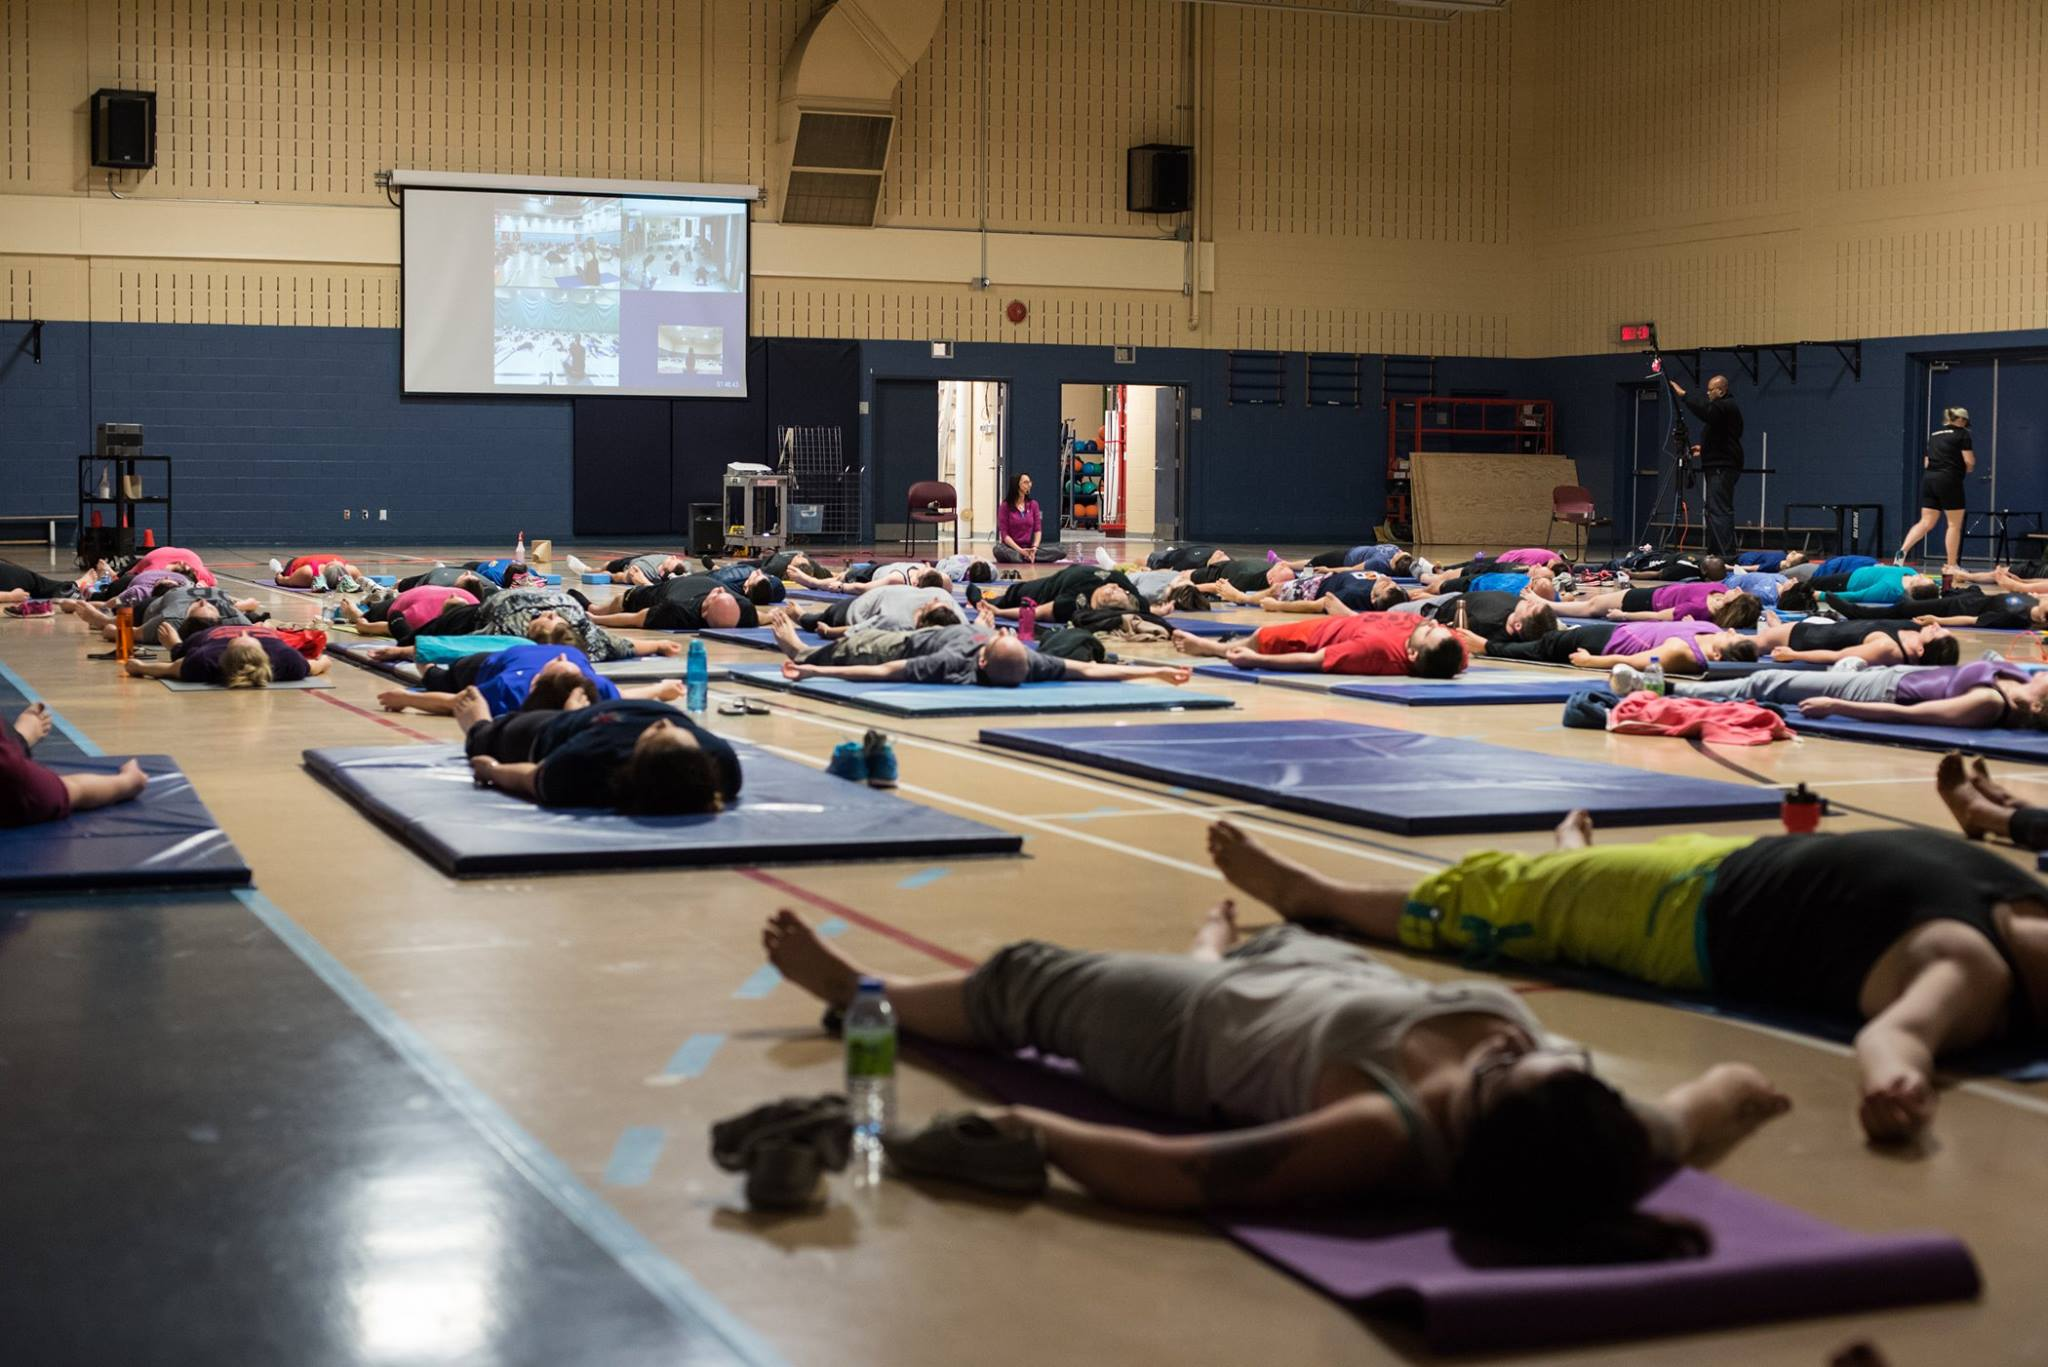 Relaxation period at the end of the yoga session. Members of the Defence Team of the 2nd Canadian Division and Joint Task Force (East) participate in Exercise YOGA 2017 (# ExYOGA2017), a yoga session live-streamed from several locations for all – women and men, both civilian and military –  to highlight International Women's Day at Canadian Forces Base/ Area Support Unit Montreal on March 8, 2017. Photo: Corporal Djalma Vuong-De Ramos, 2nd Canadian Division/Joint Task Force (East) ©2017 DND/MDN Canada